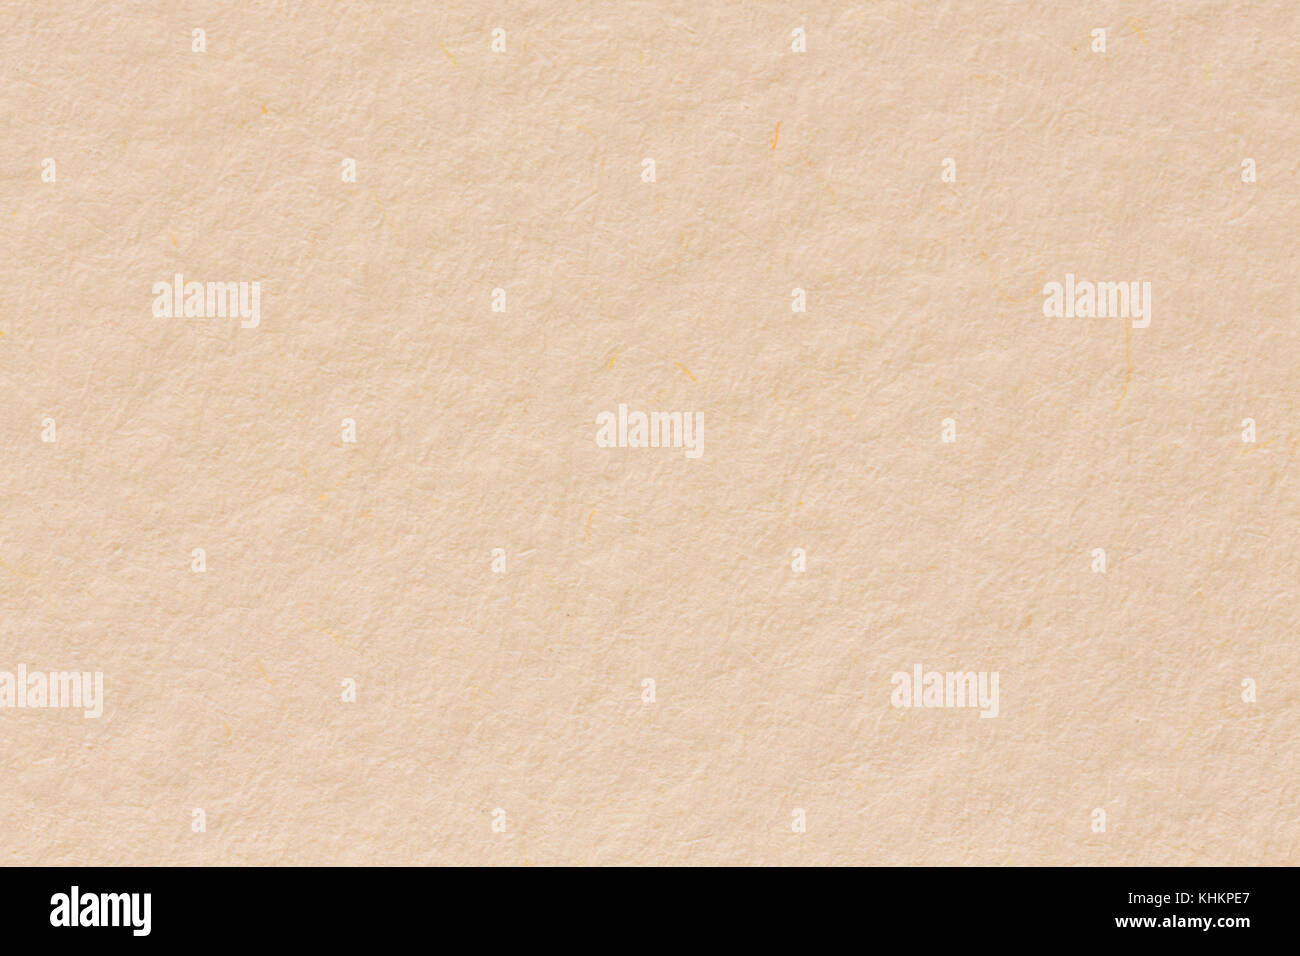 Canvas Burlap Fabric Texture Background In Beige Yellow Sepia Tan Brown Color For Arts Painting